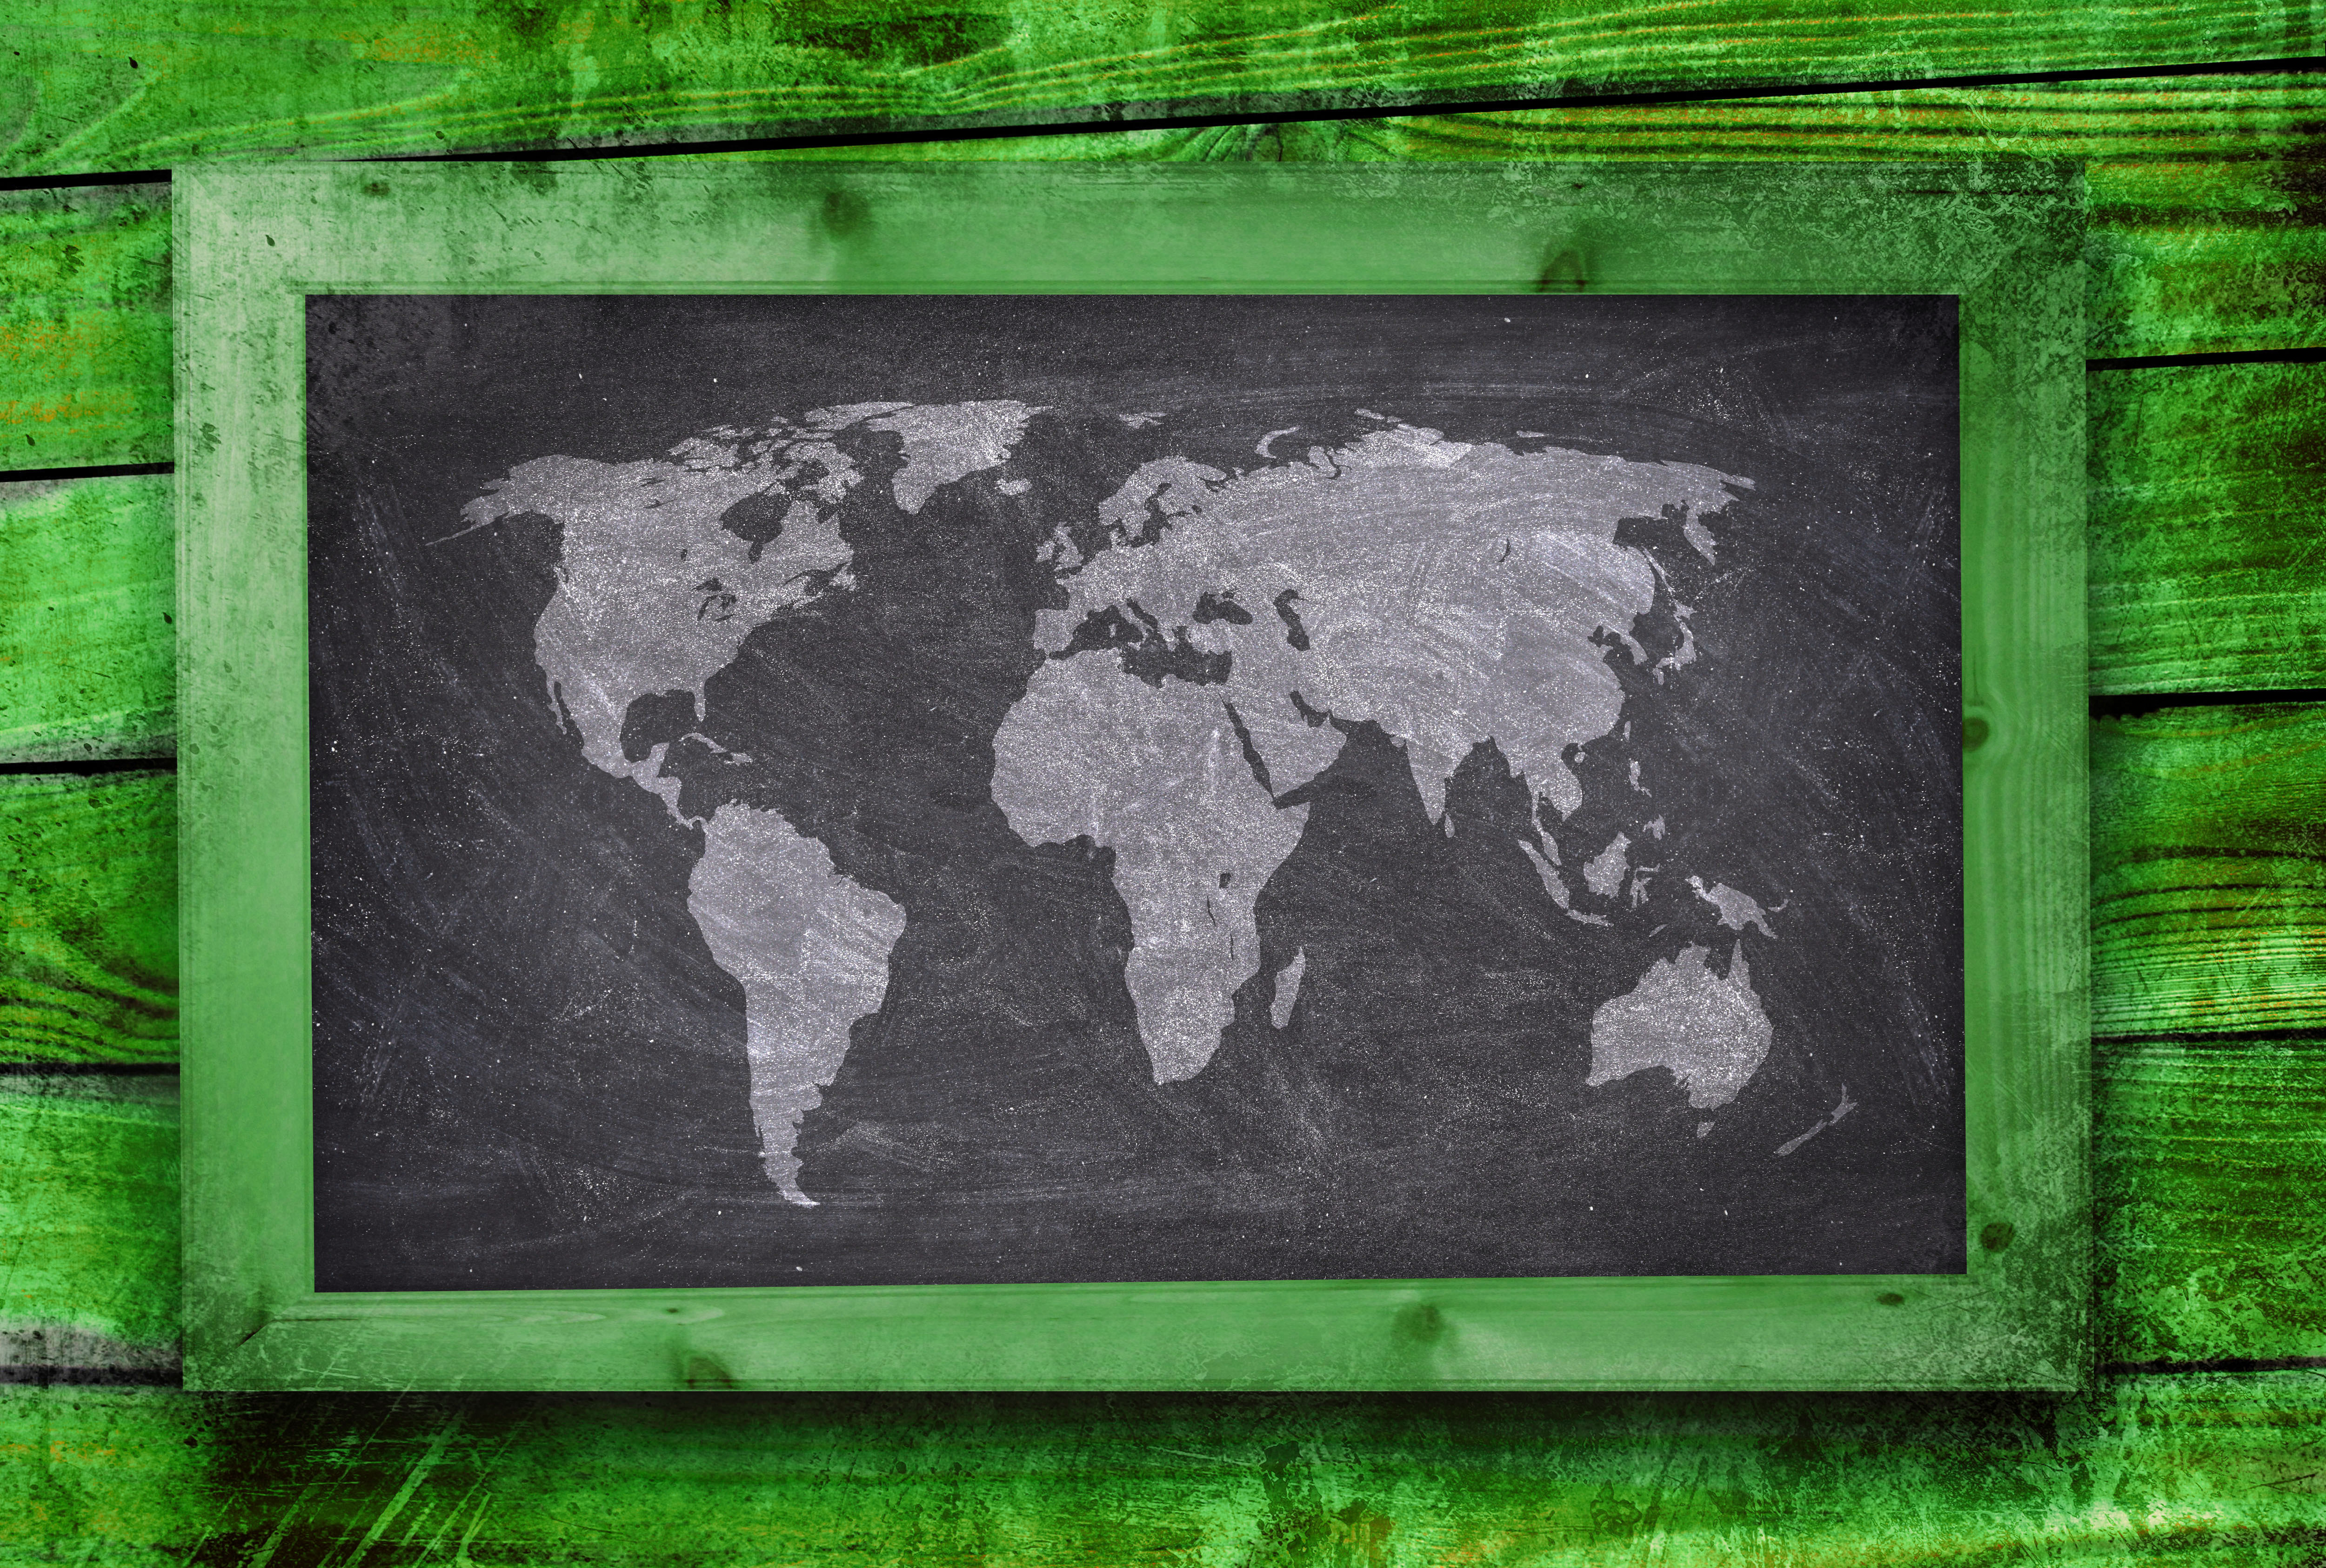 Nearshoring Vs. Reshoring: What's the Difference?